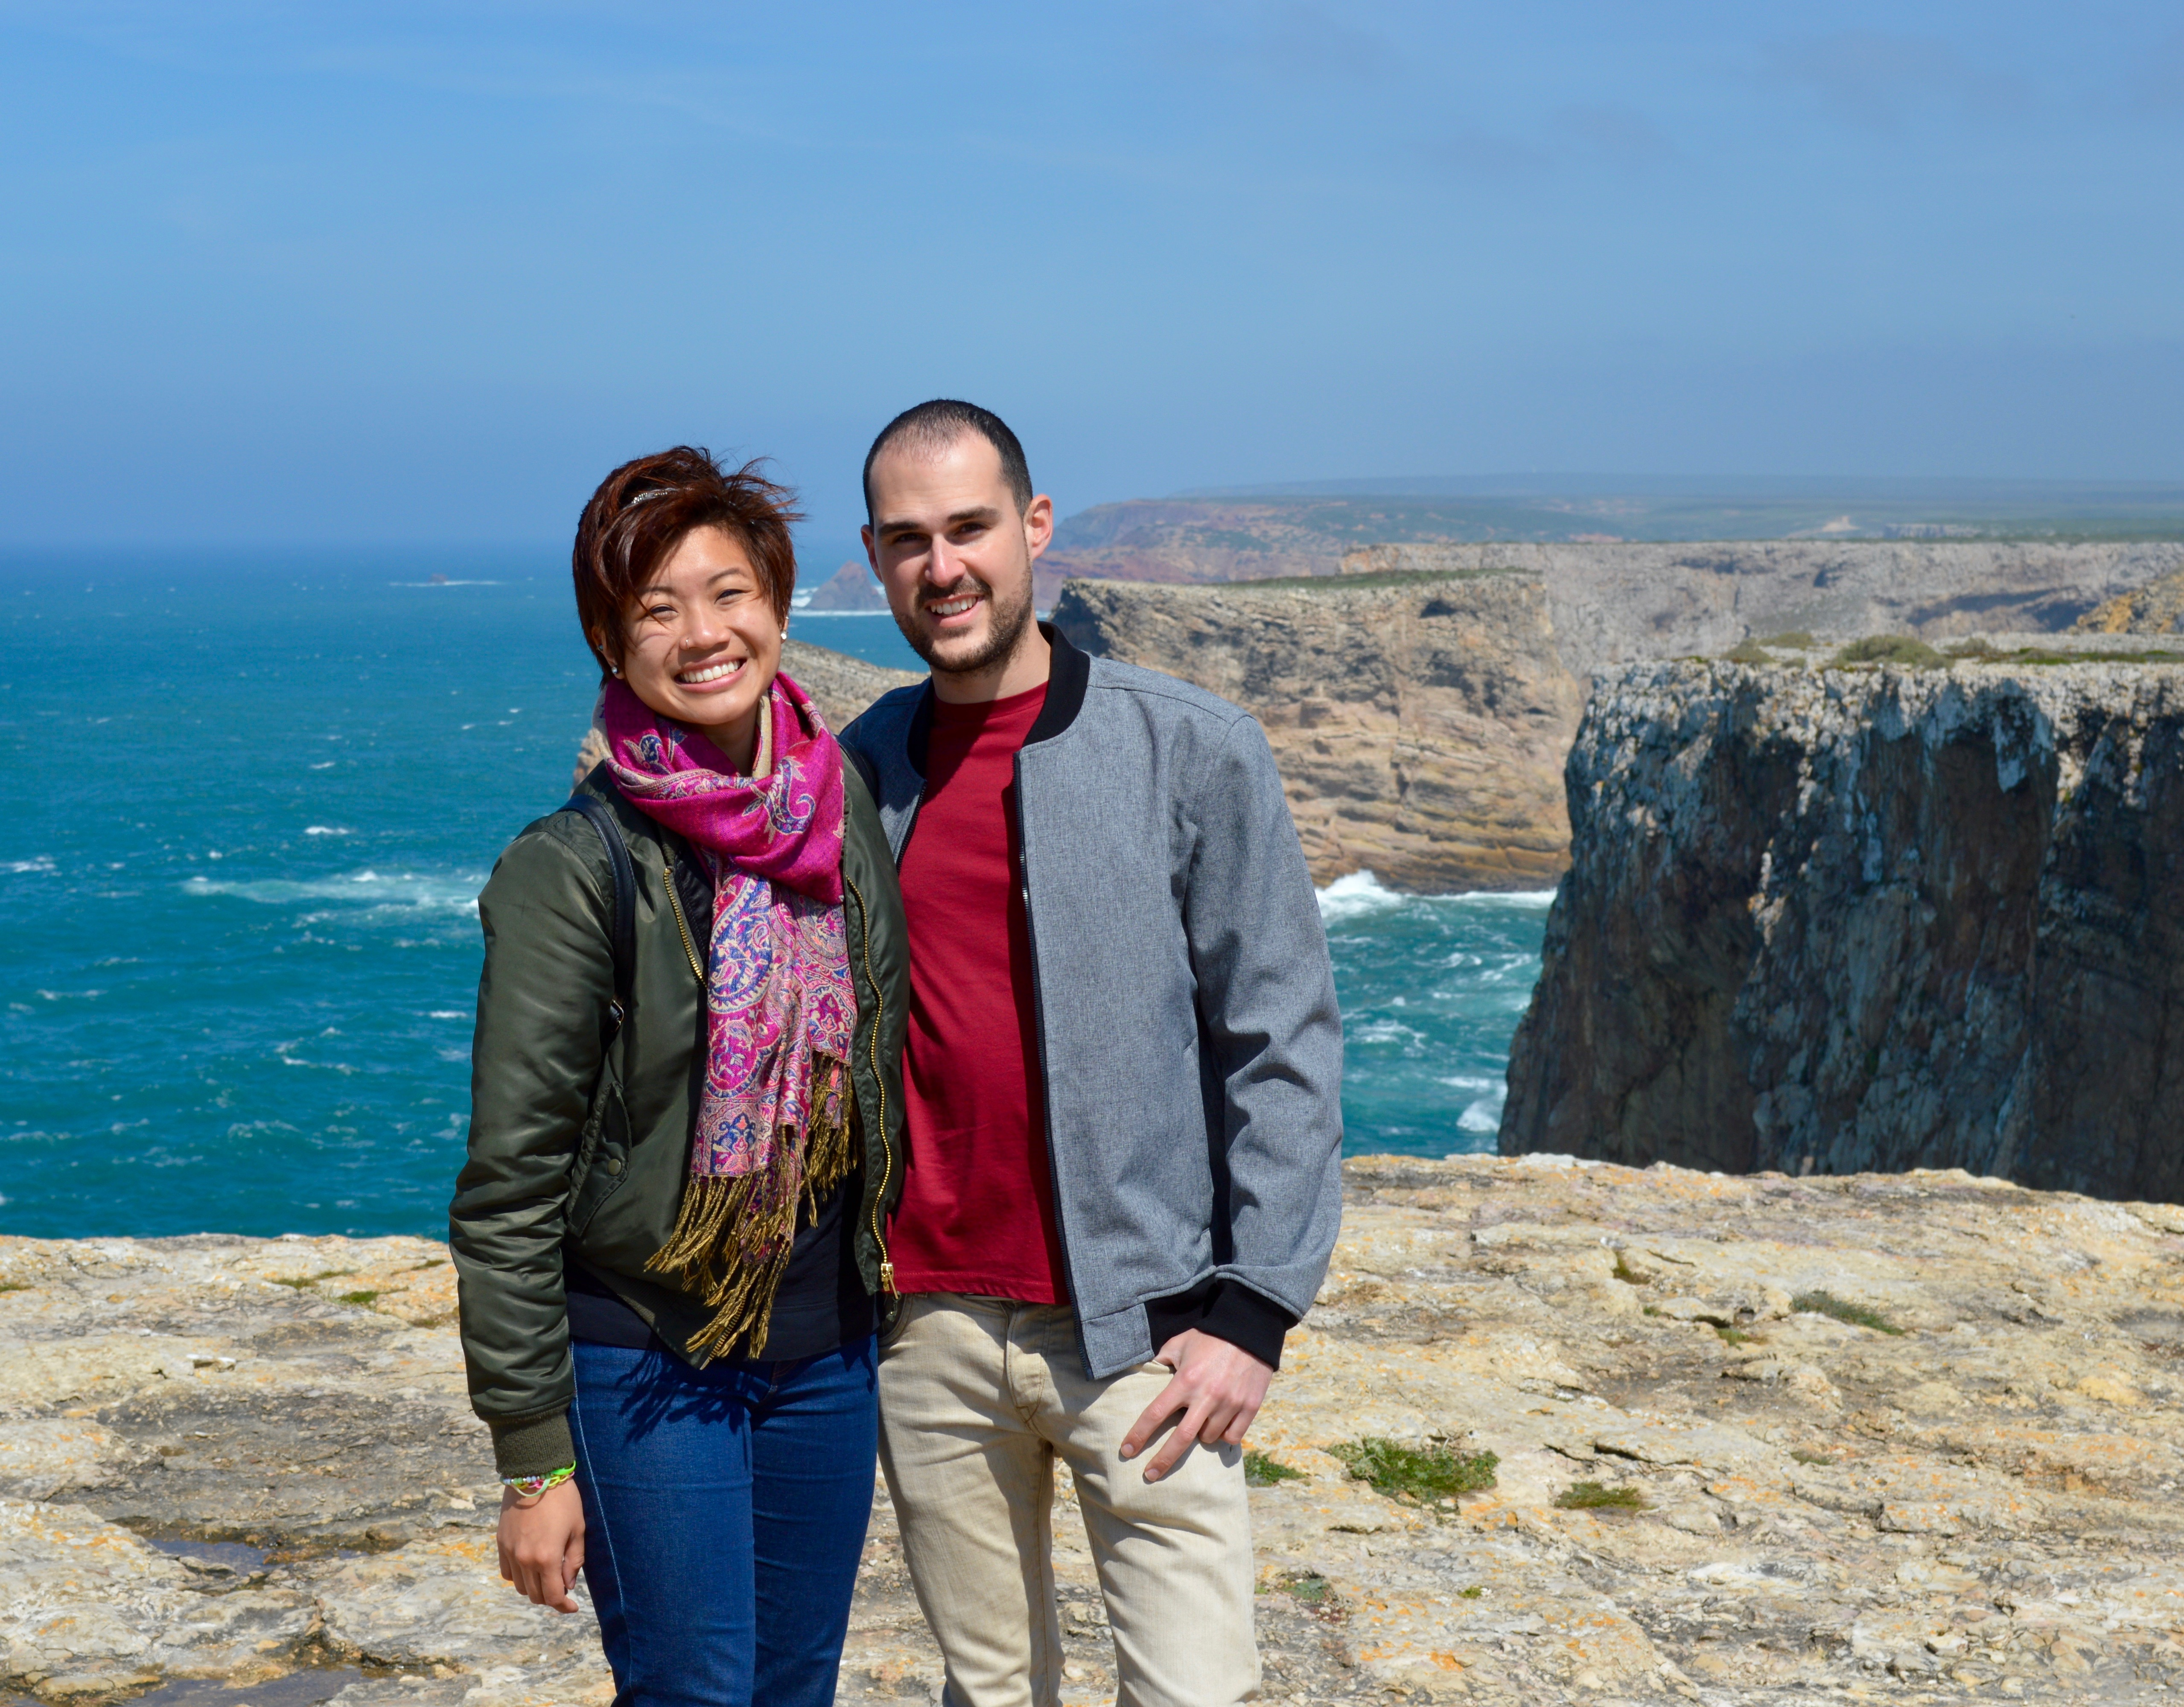 Internation Couples Series Sagres, Portugal -- The Quirky Pineapple